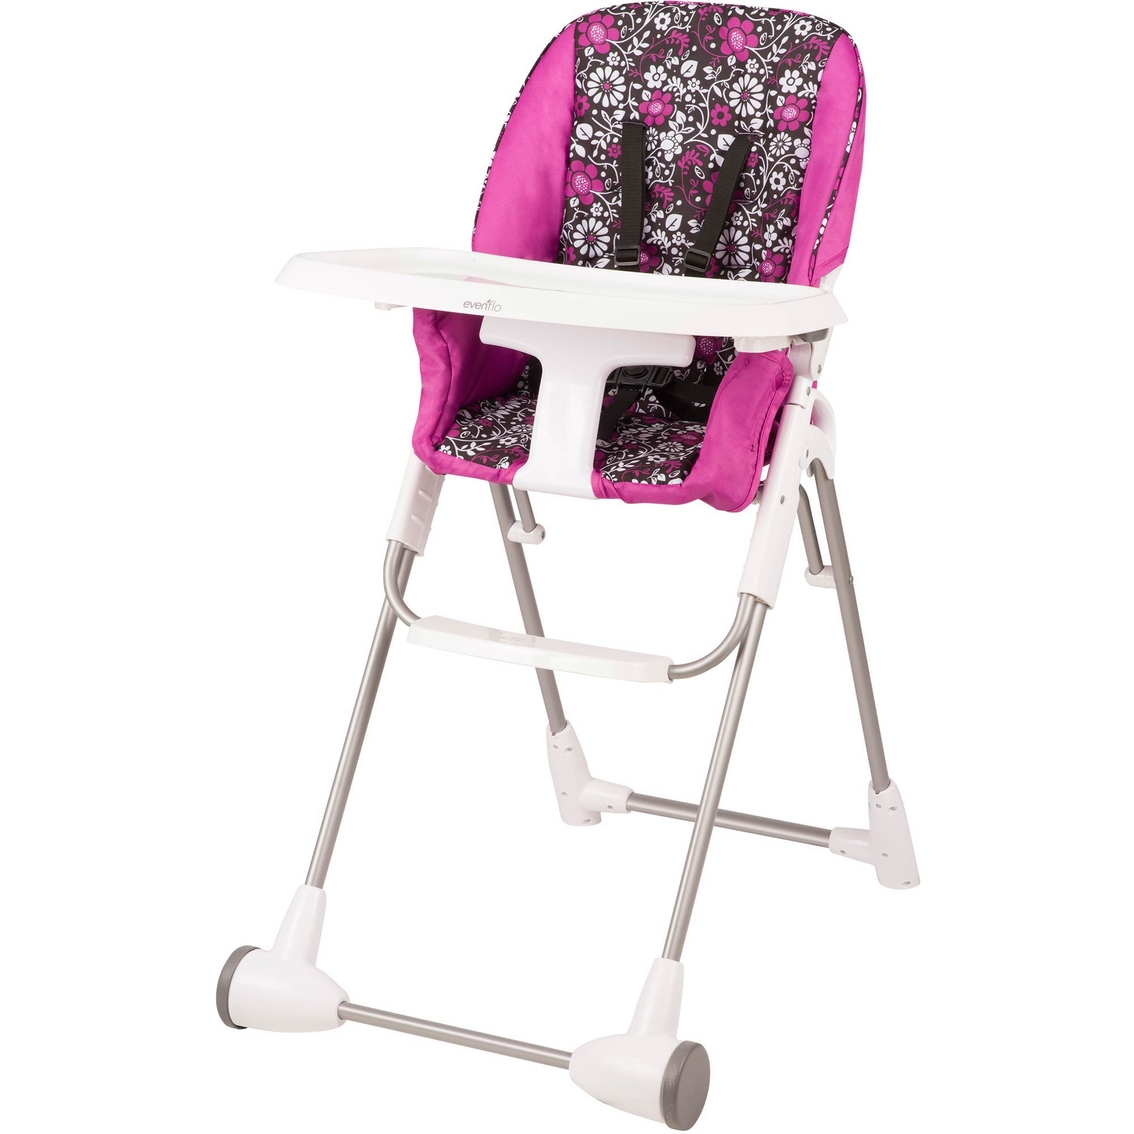 high chair that folds flat best chairs swivel glider recliner evenflo symmetry fold highchairs baby